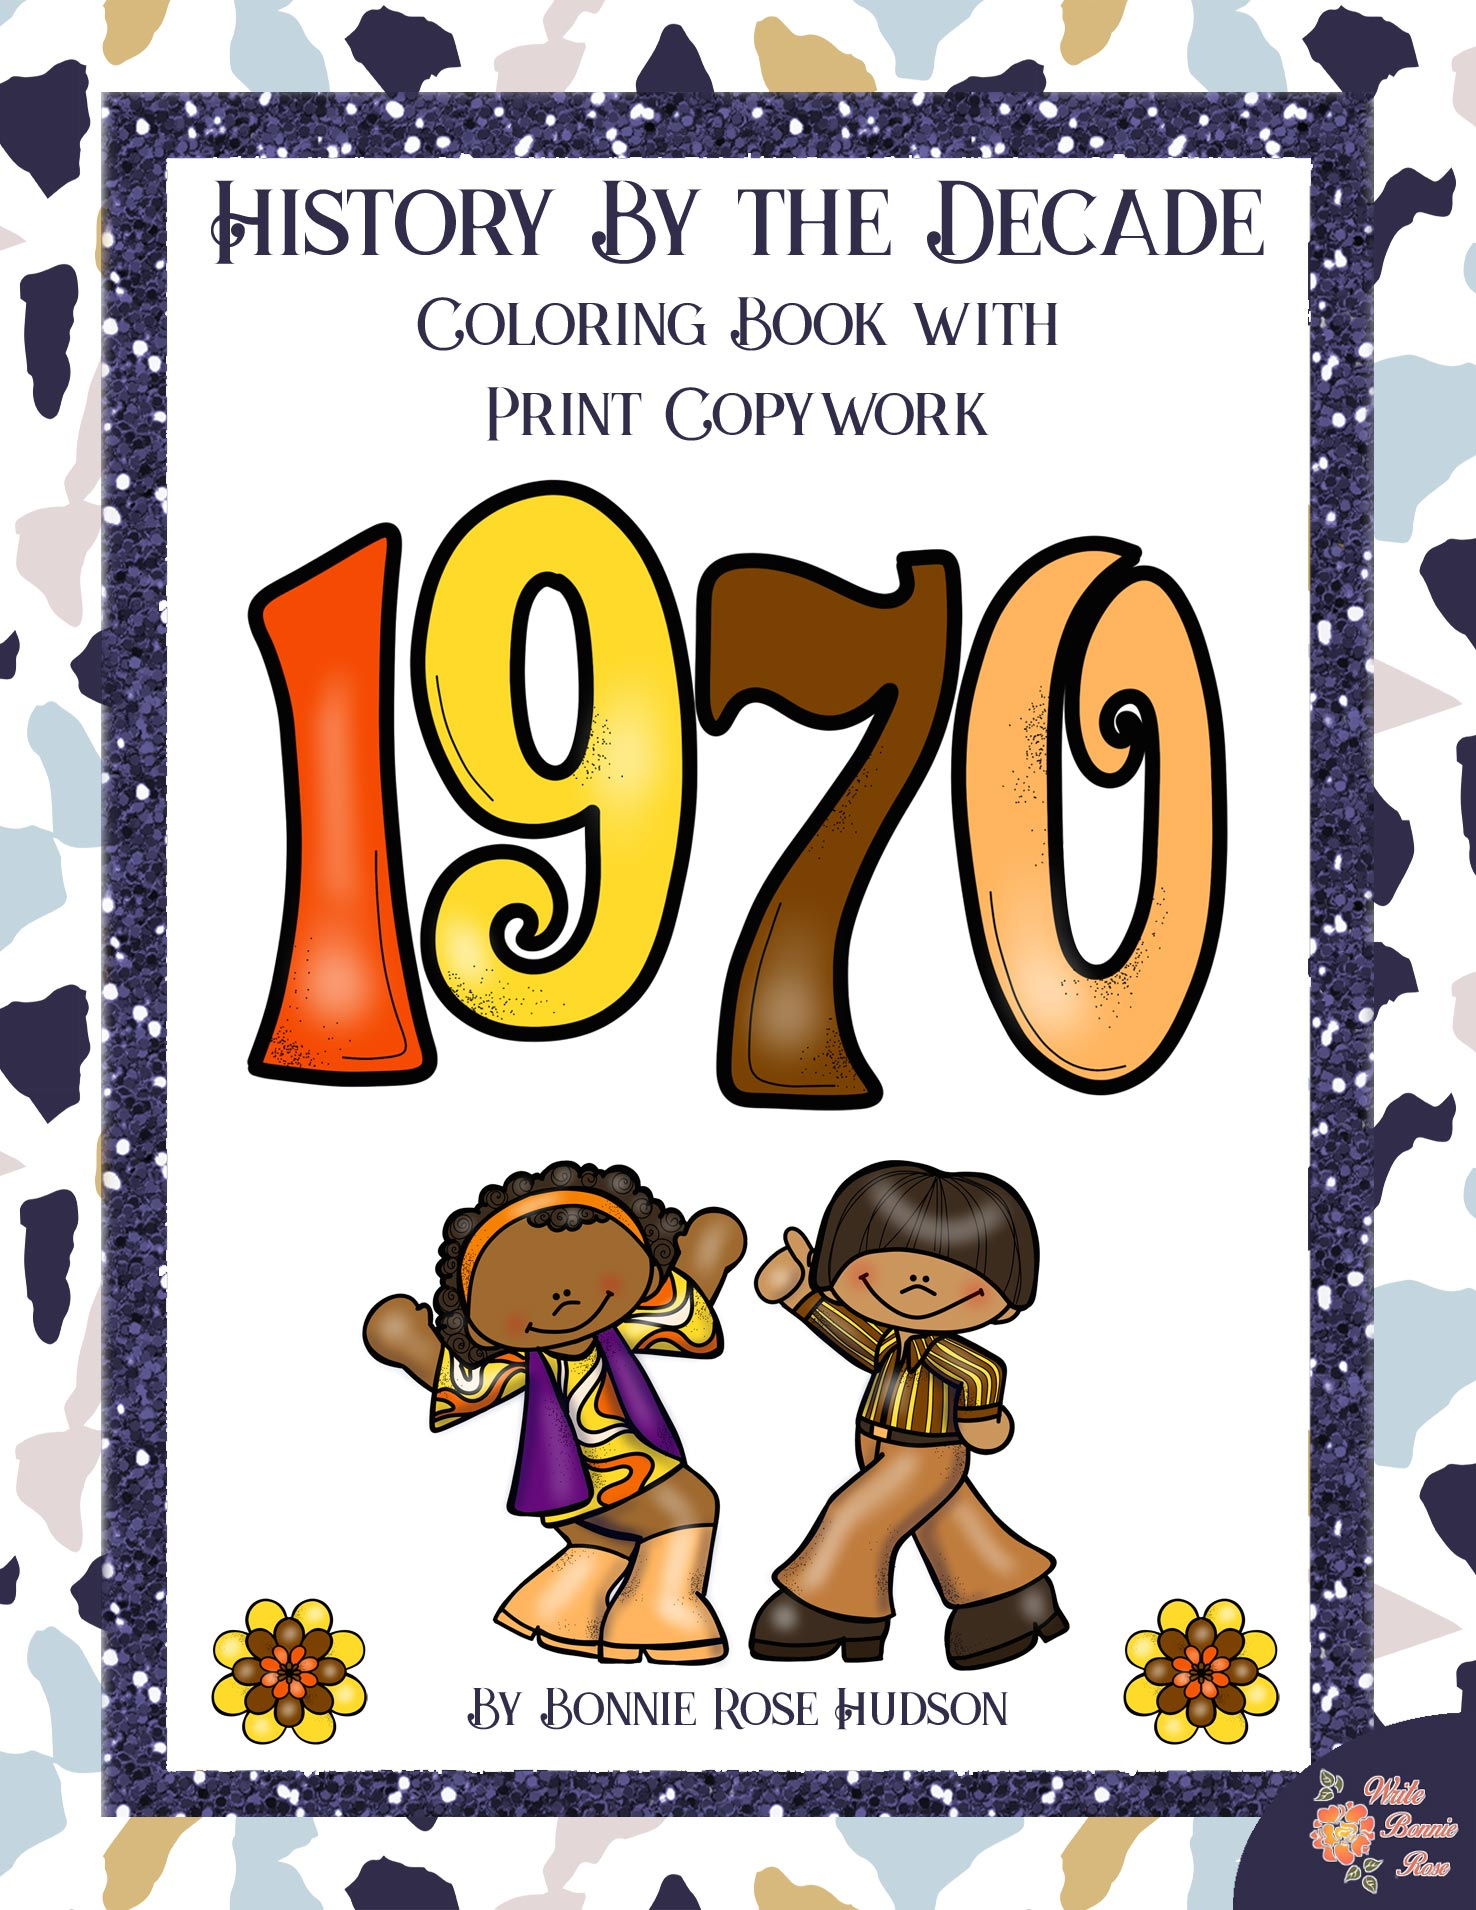 History By the Decade 1970s Coloring